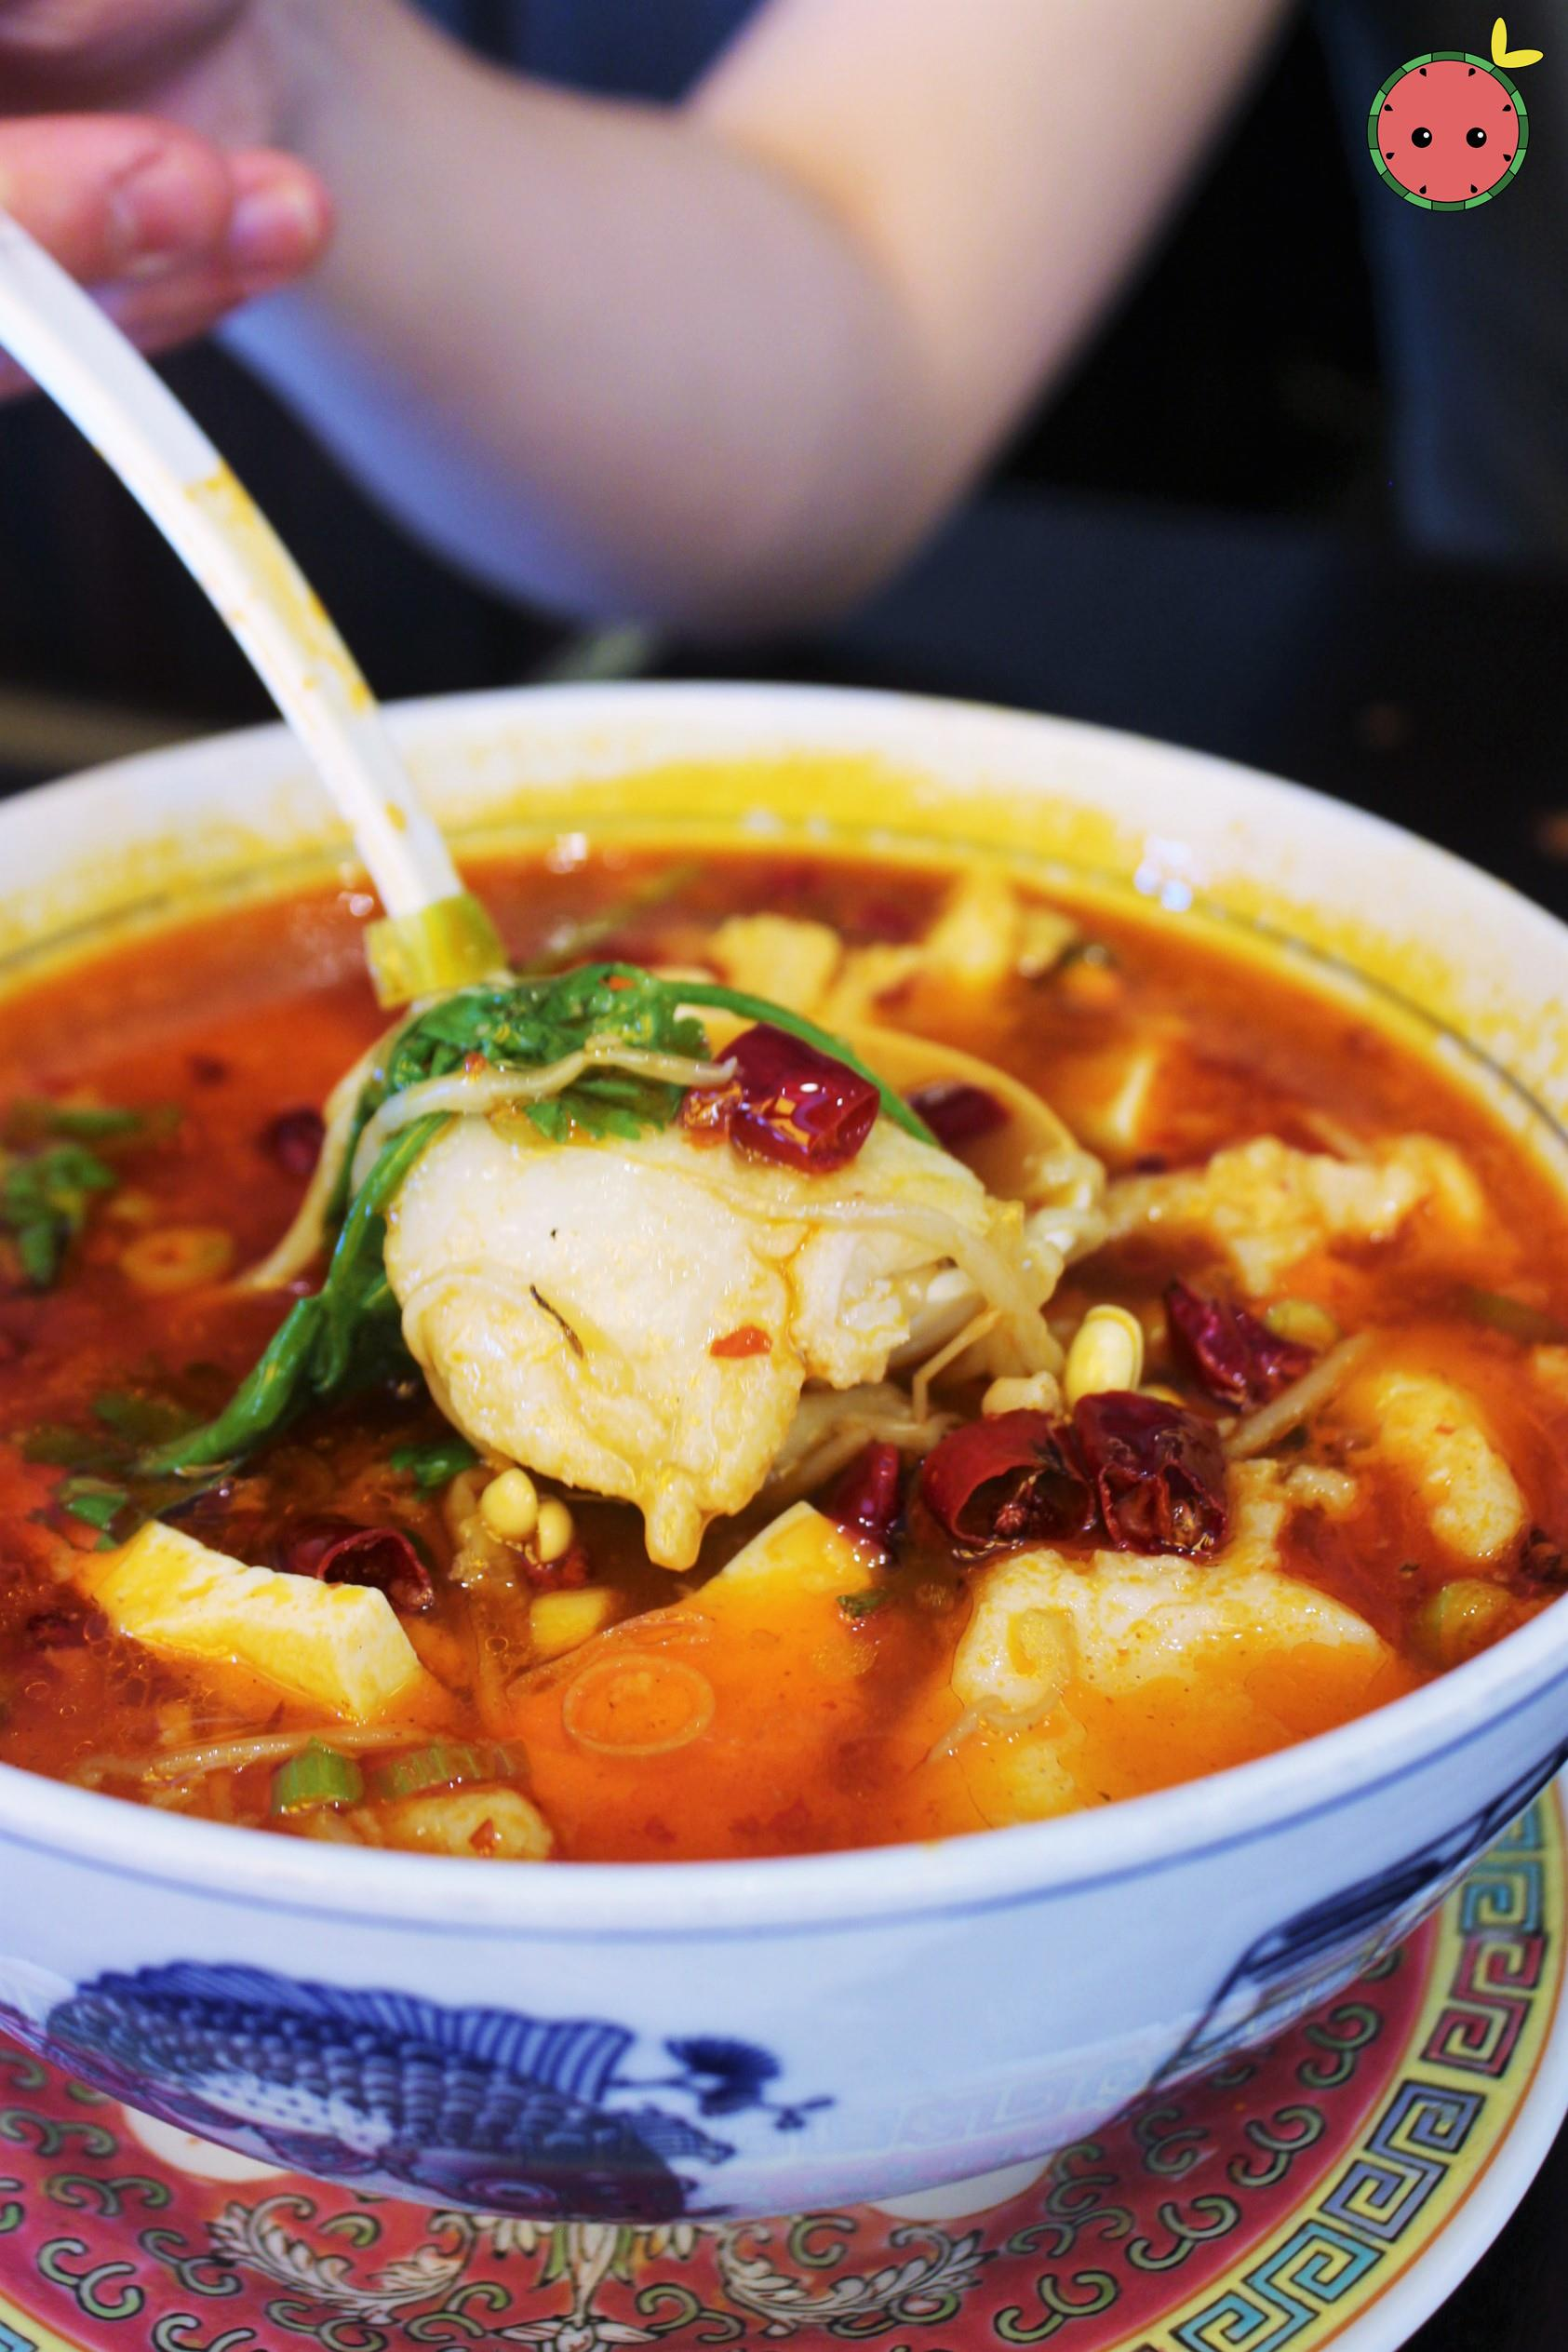 Chungking Braised Fish in Red Soup - Tilapia or fillets of sole with chili oil and peppercorn 3